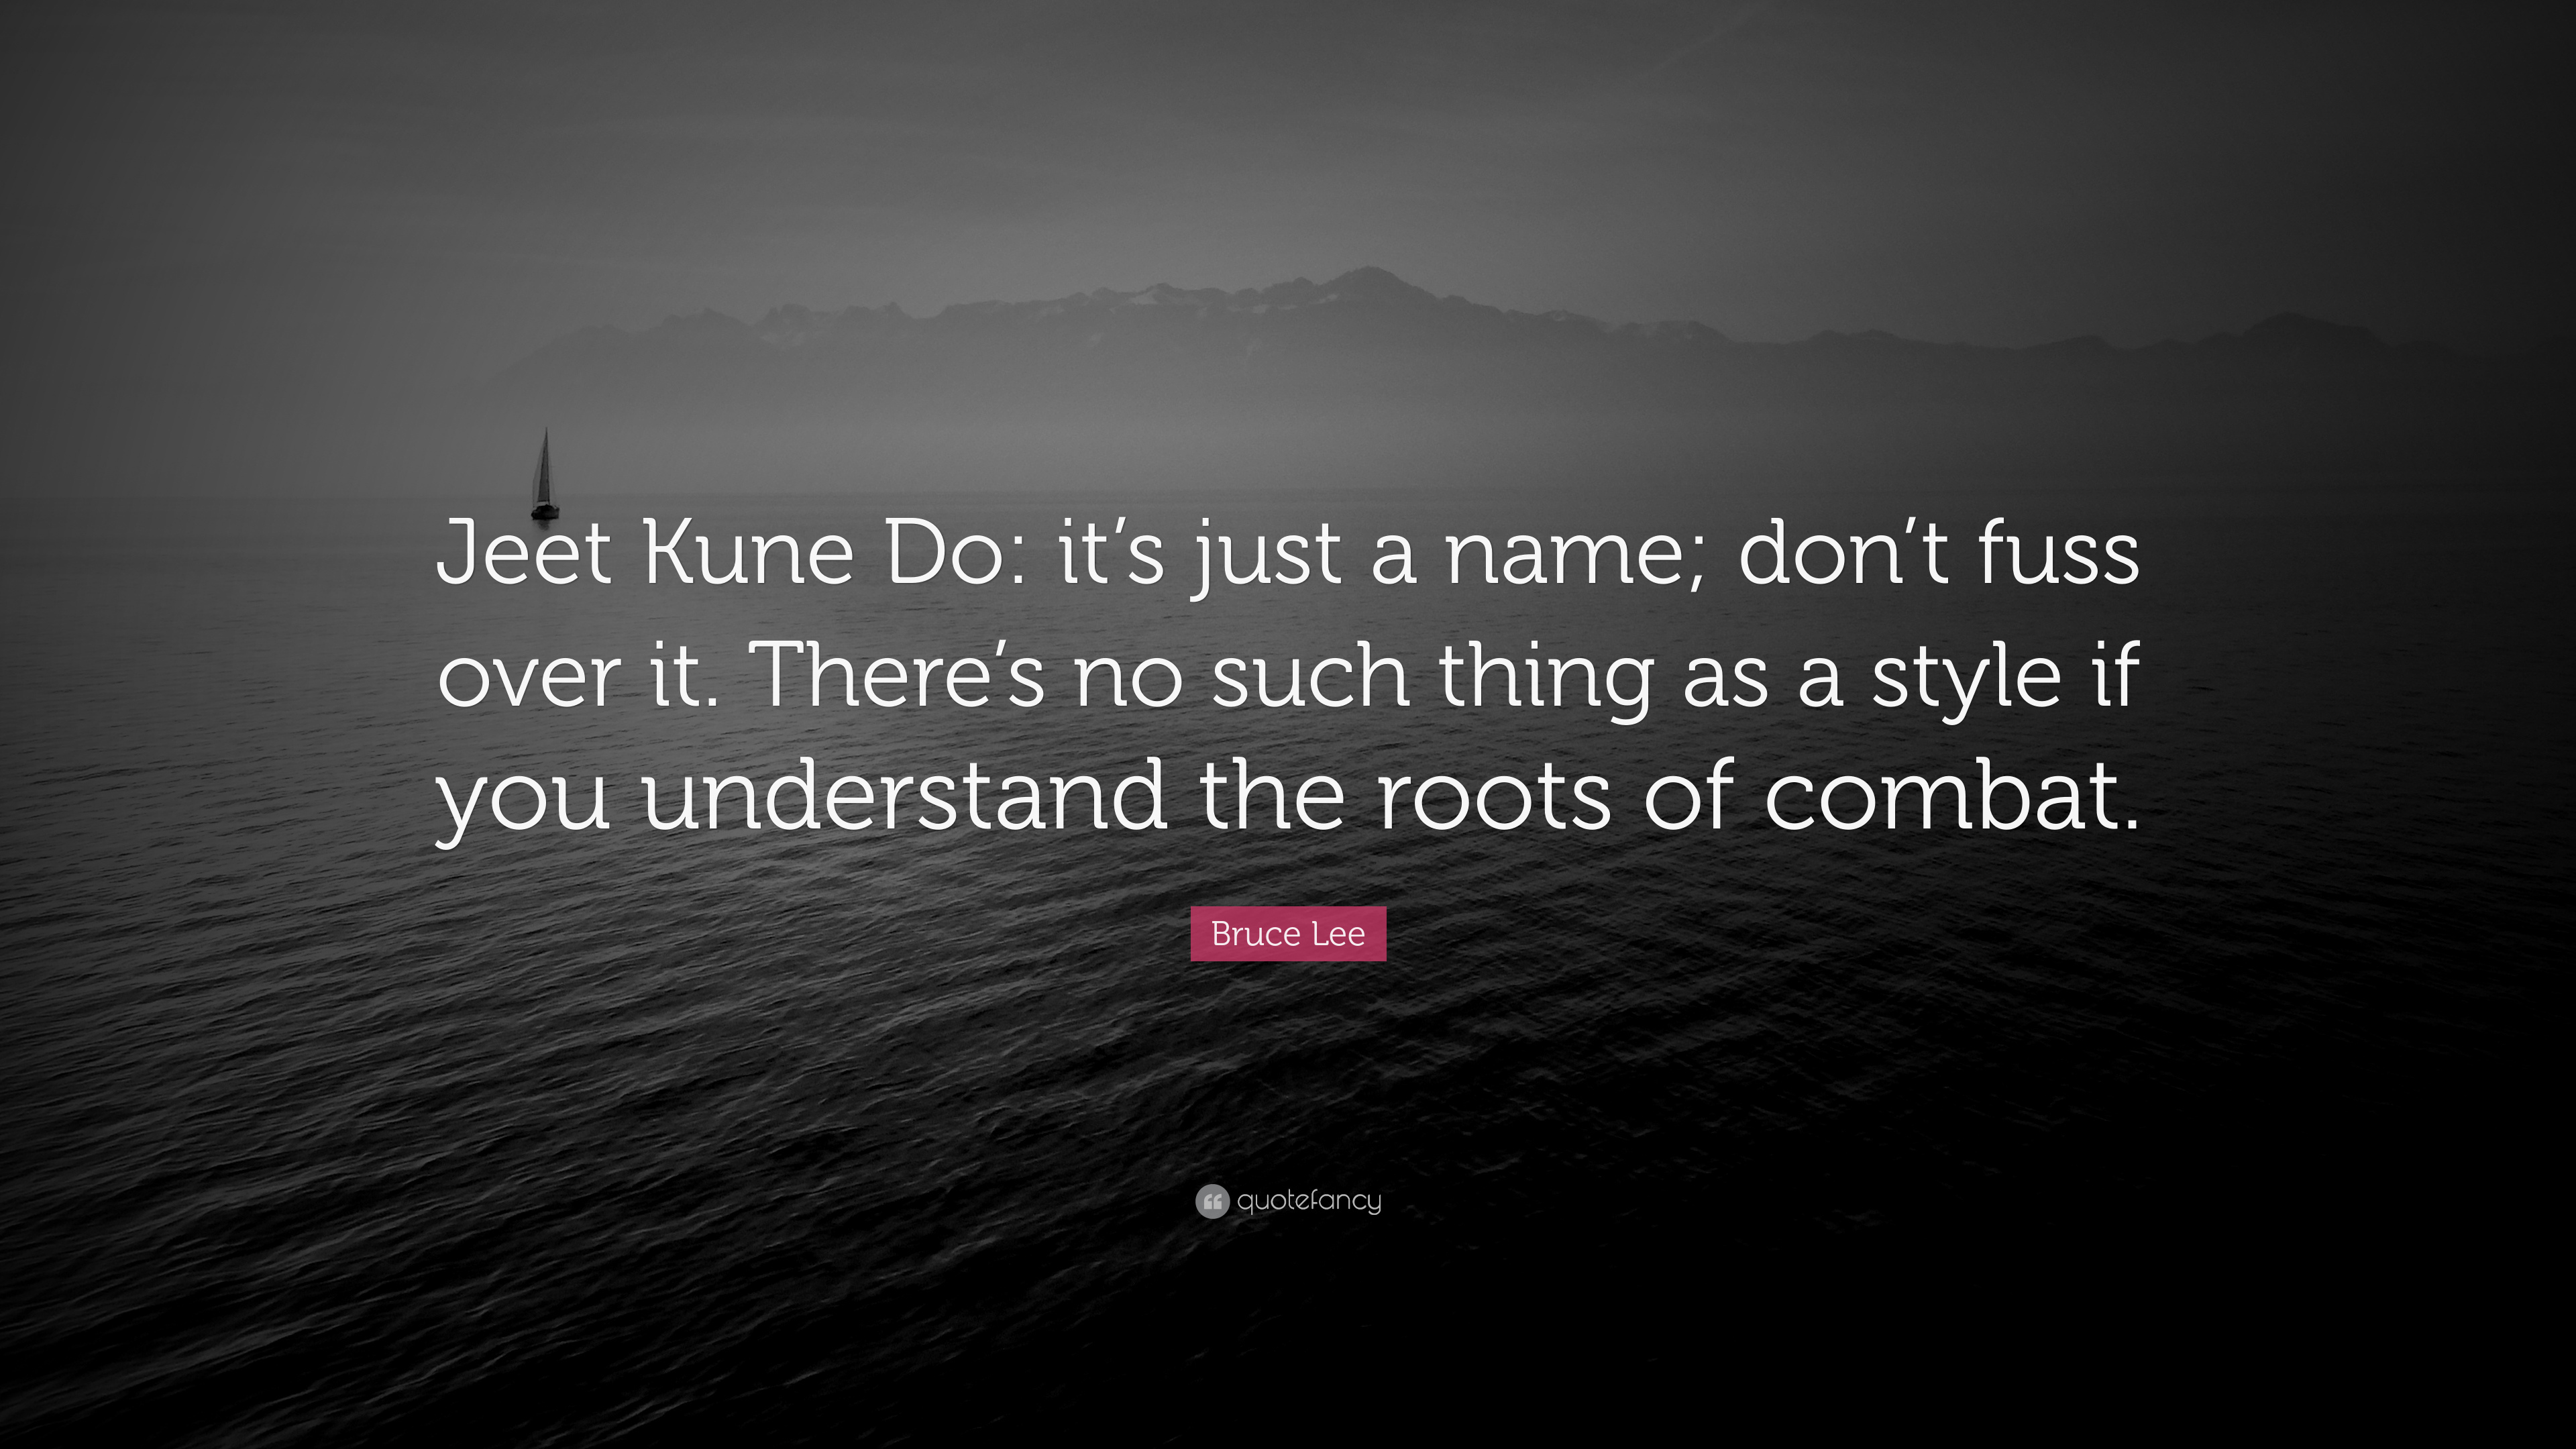 """Bruce Lee Jeet Kune Do Quotes Bruce Lee Quote: """"Je..."""